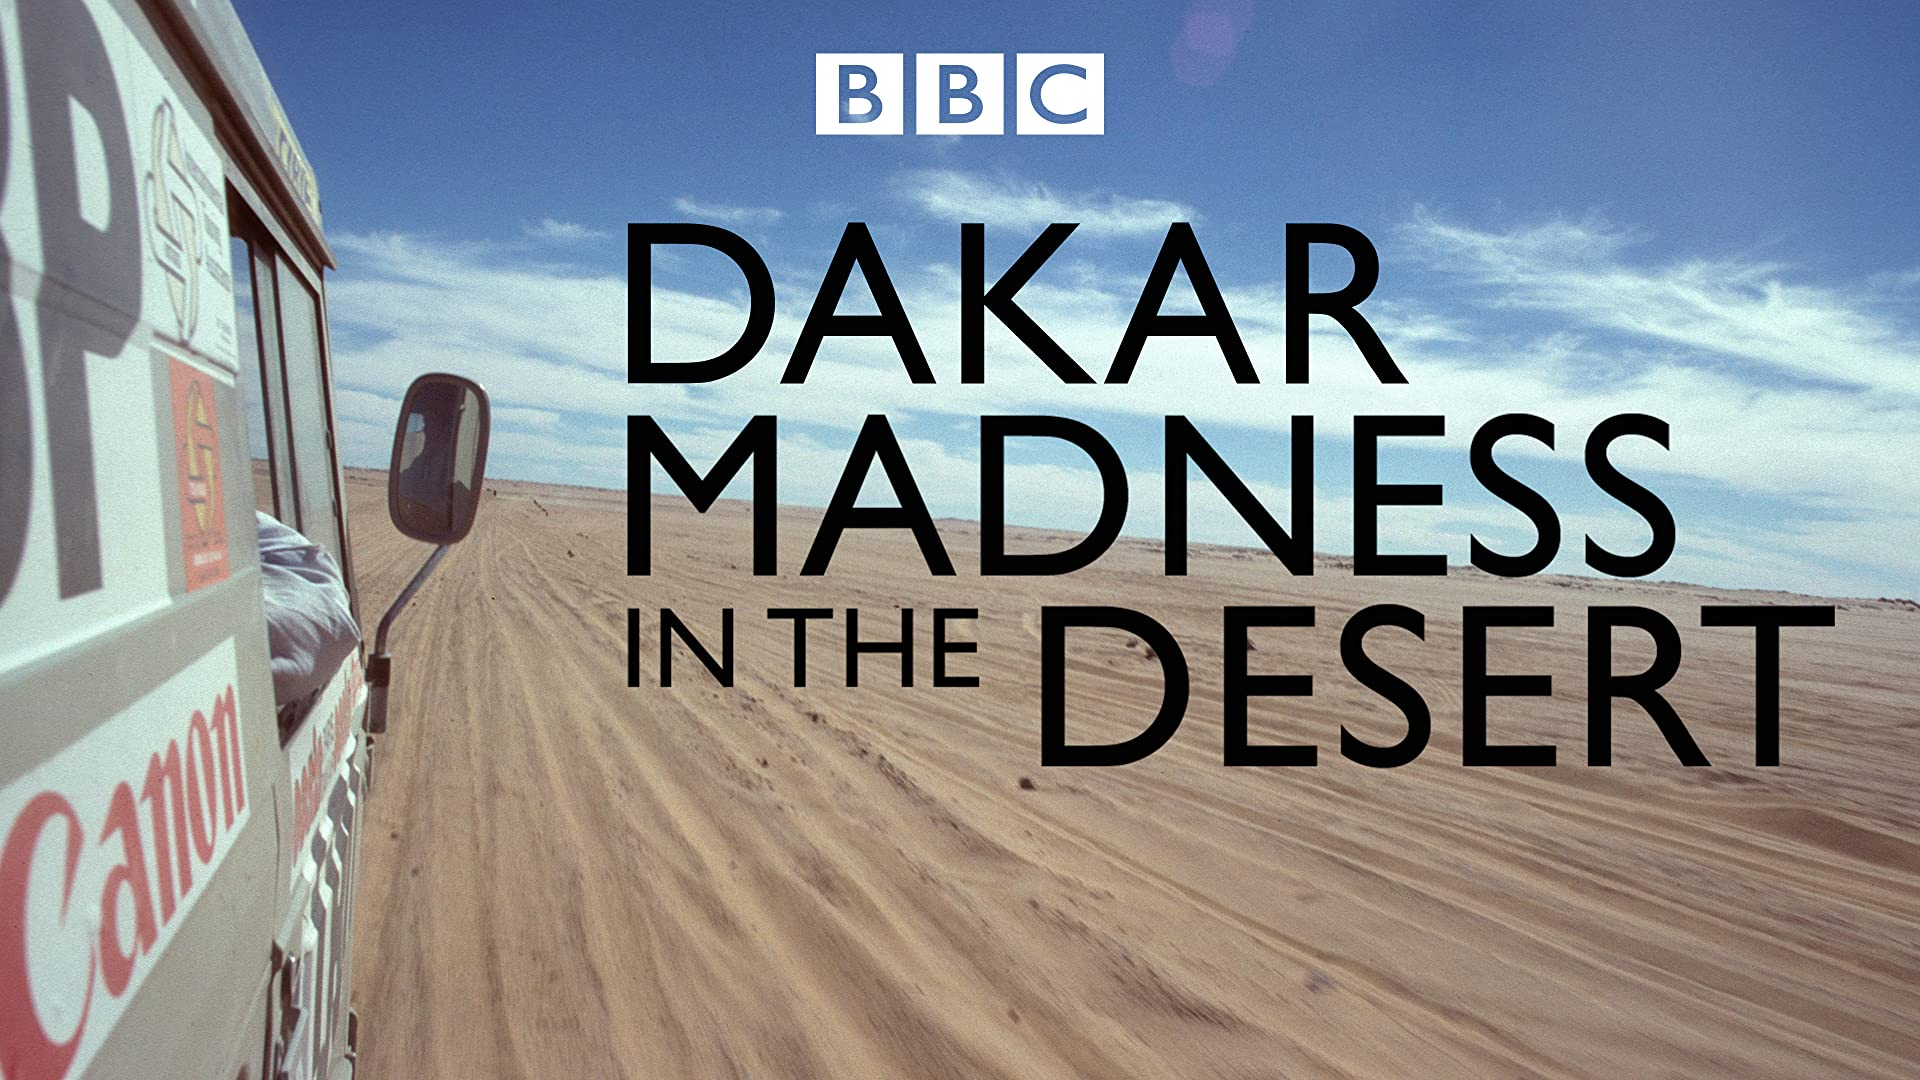 Dakar - Madness in the Desert